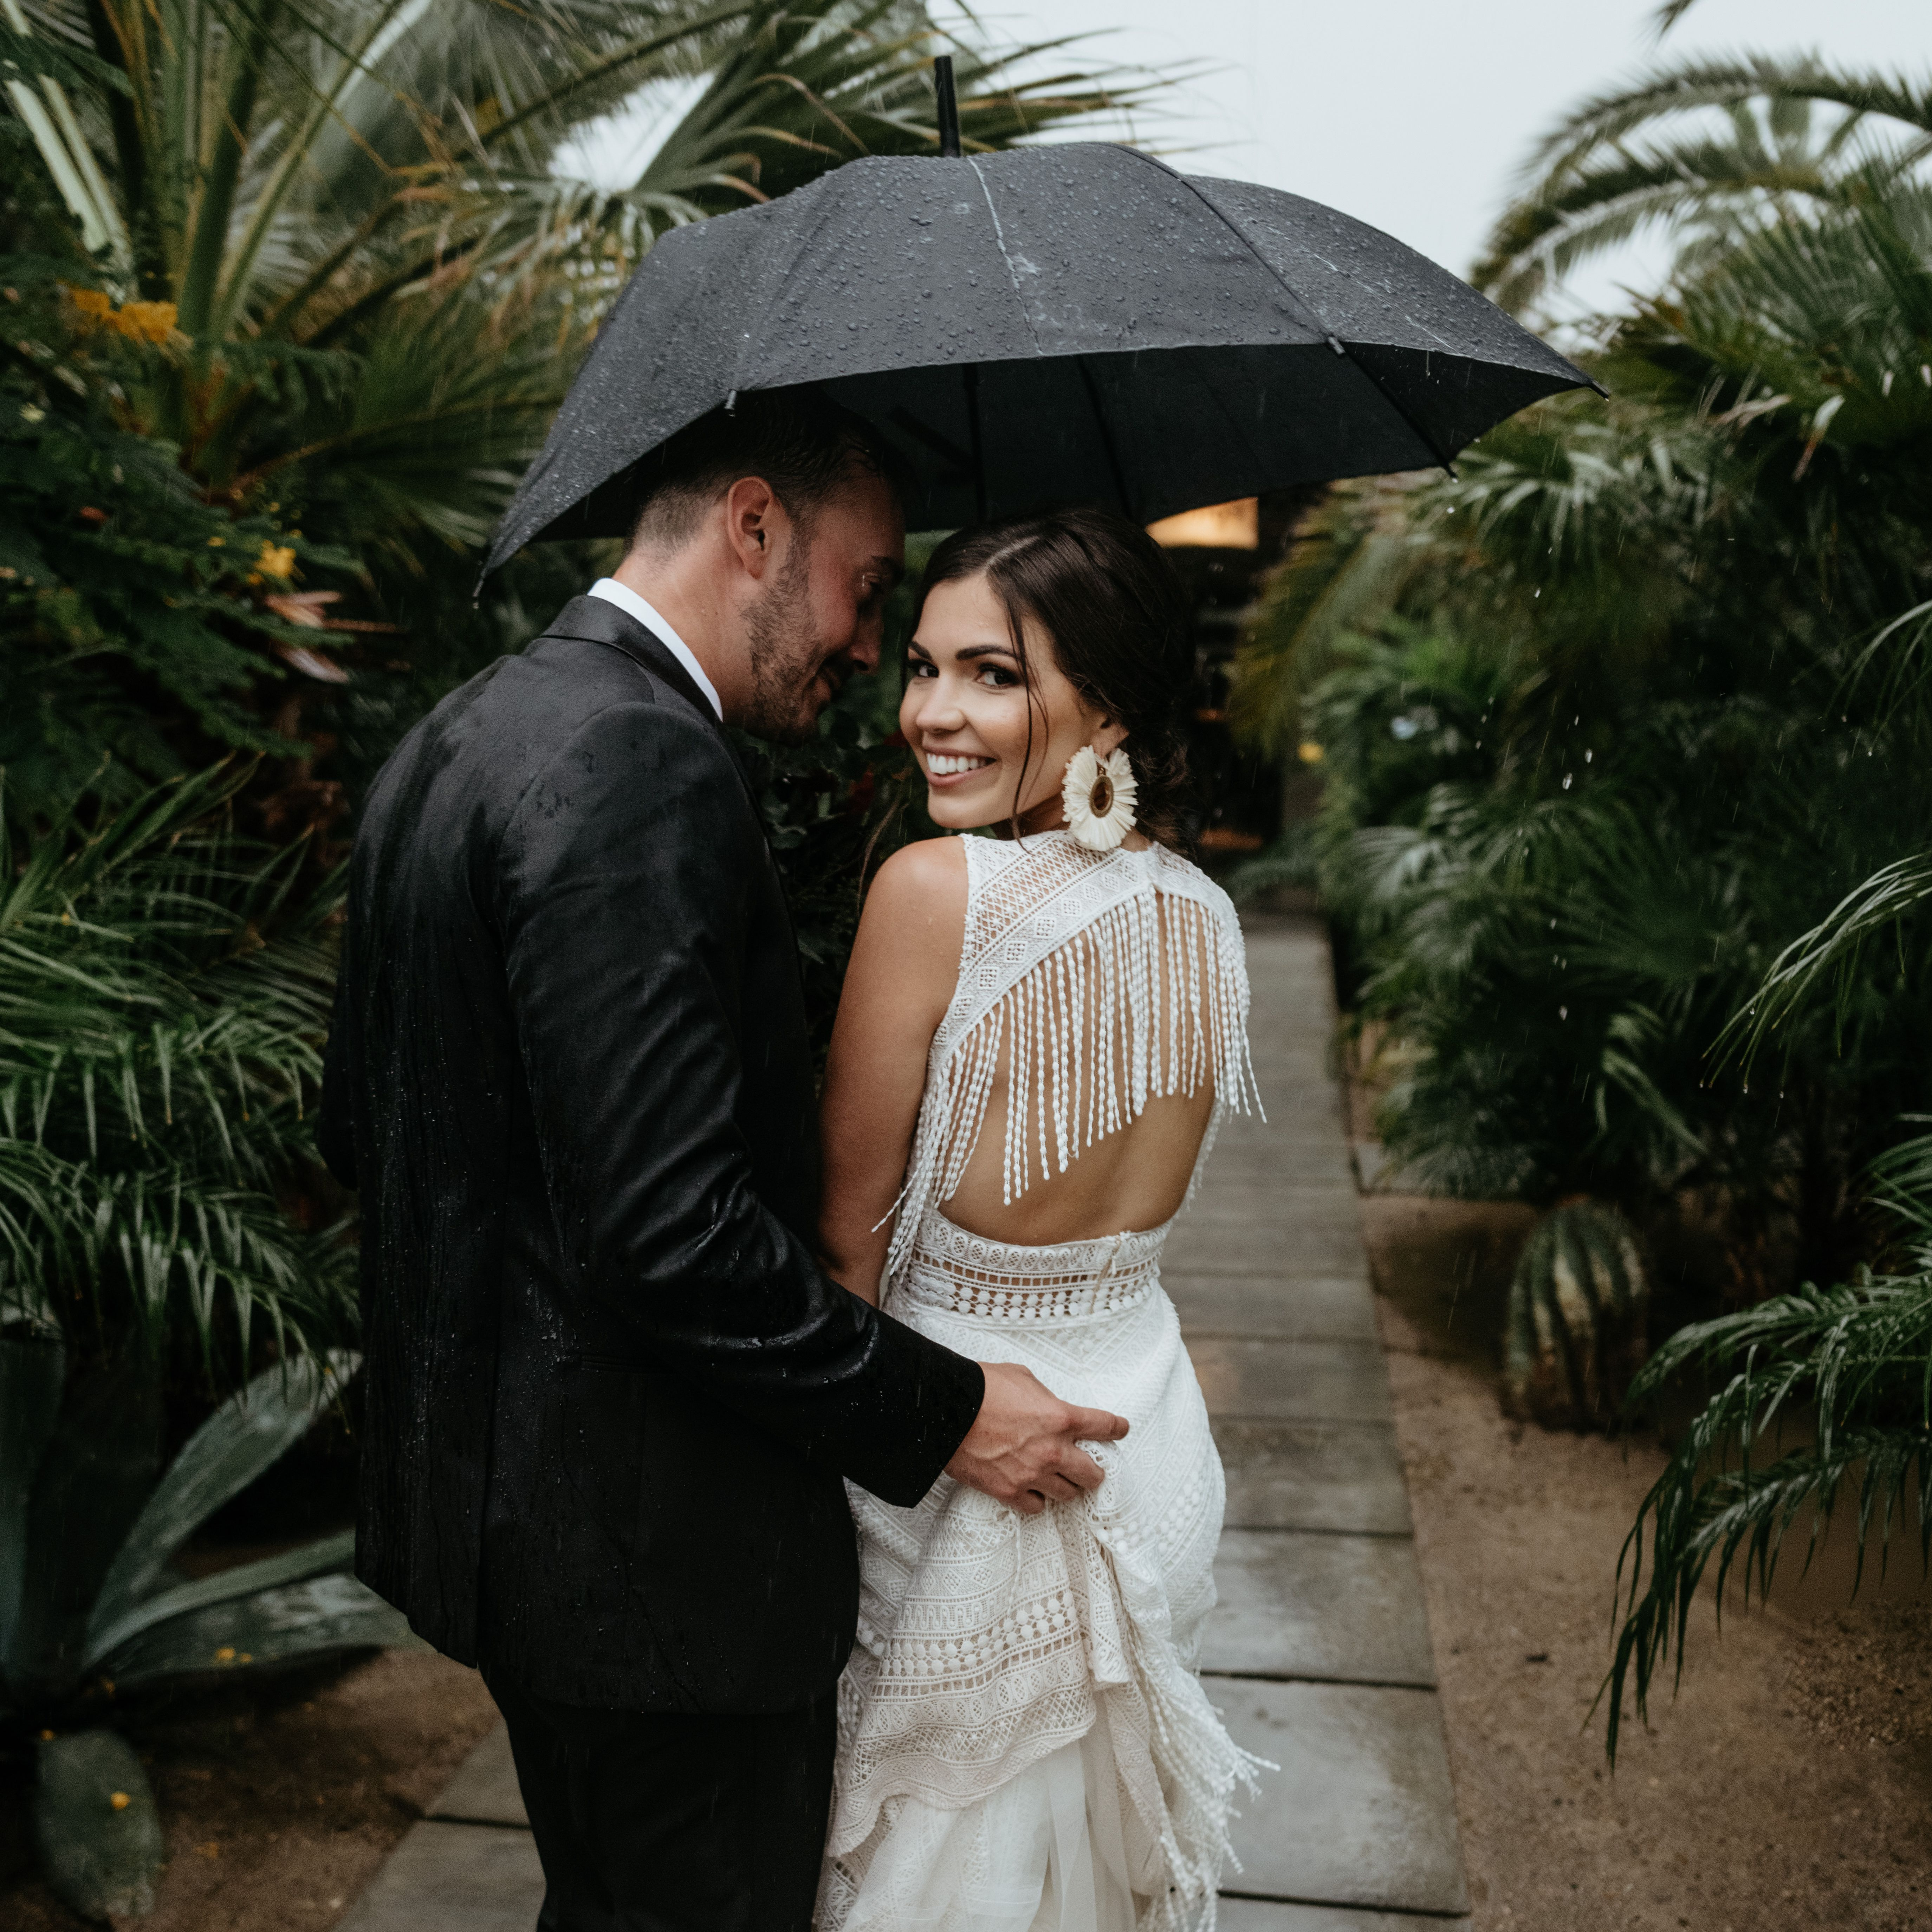 9 Wedding Photos That Prove Rain on Your Big Day Is No Big Deal